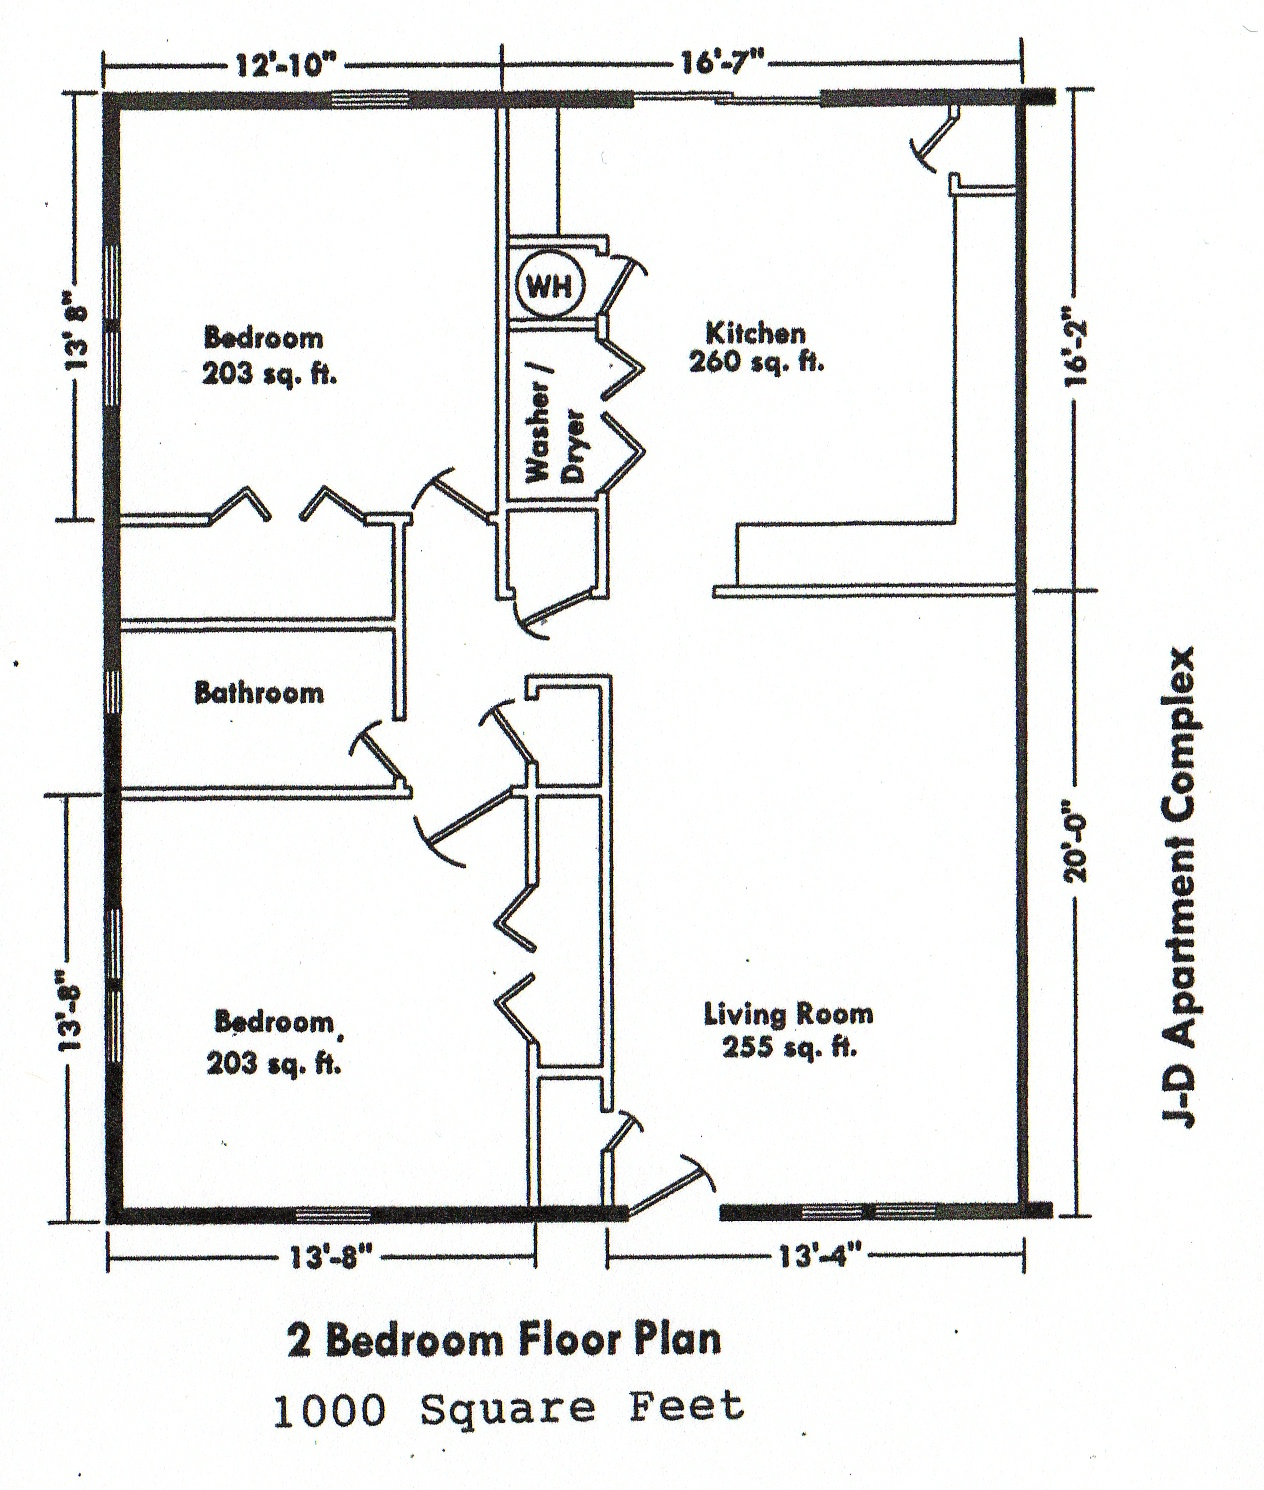 2 bedroom home floor plans